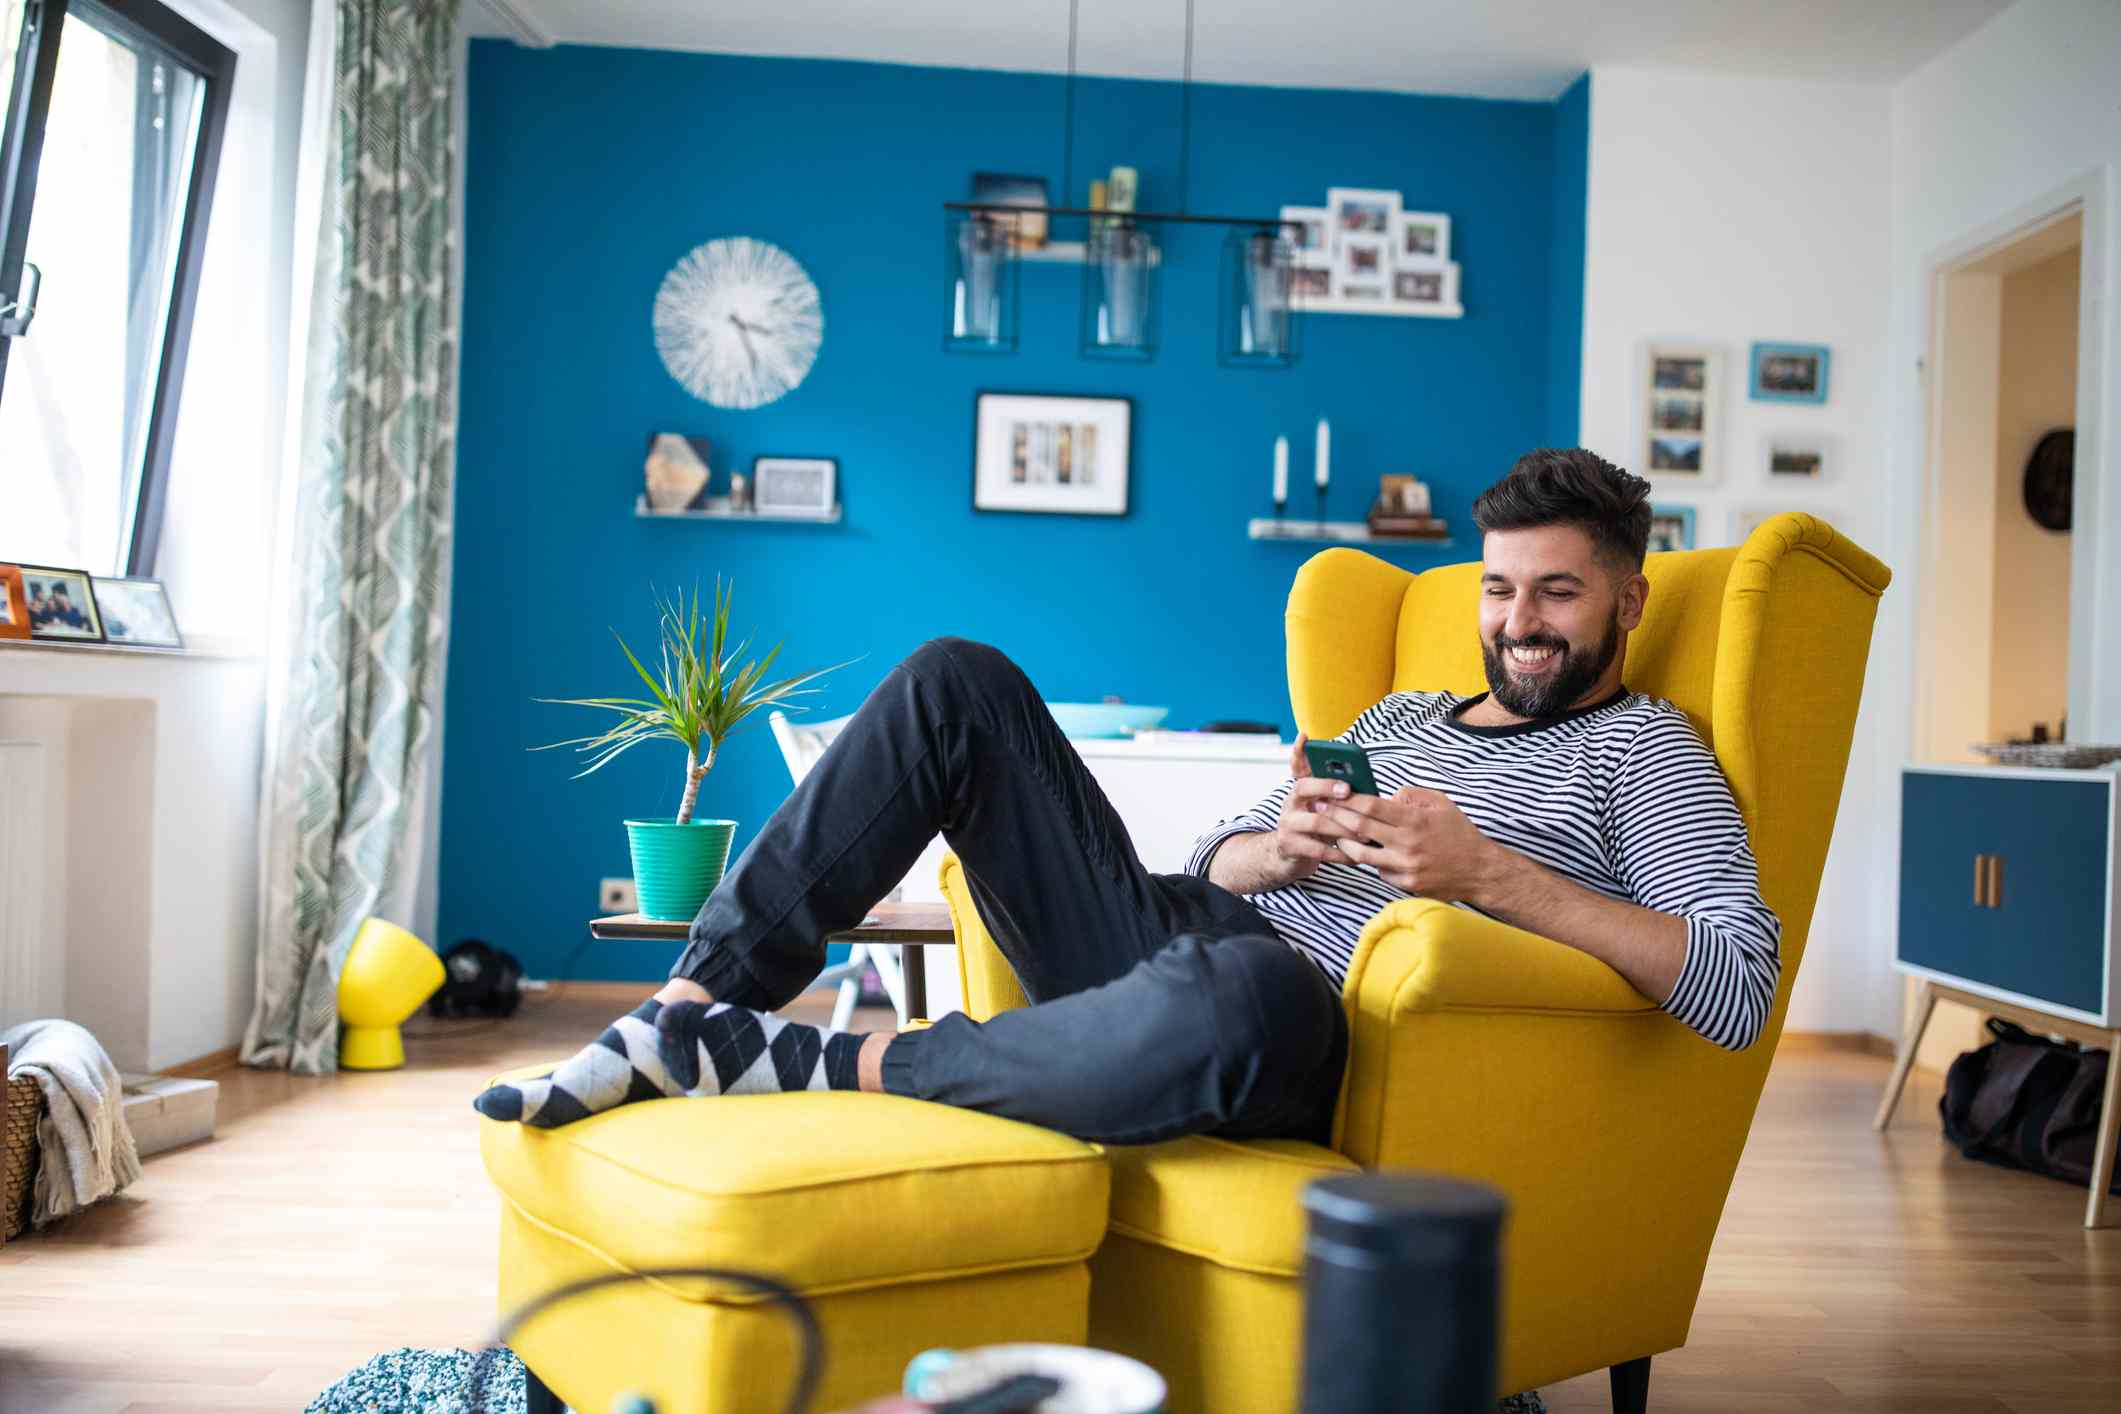 Young man laughing while holding his phone and sitting in his apartment